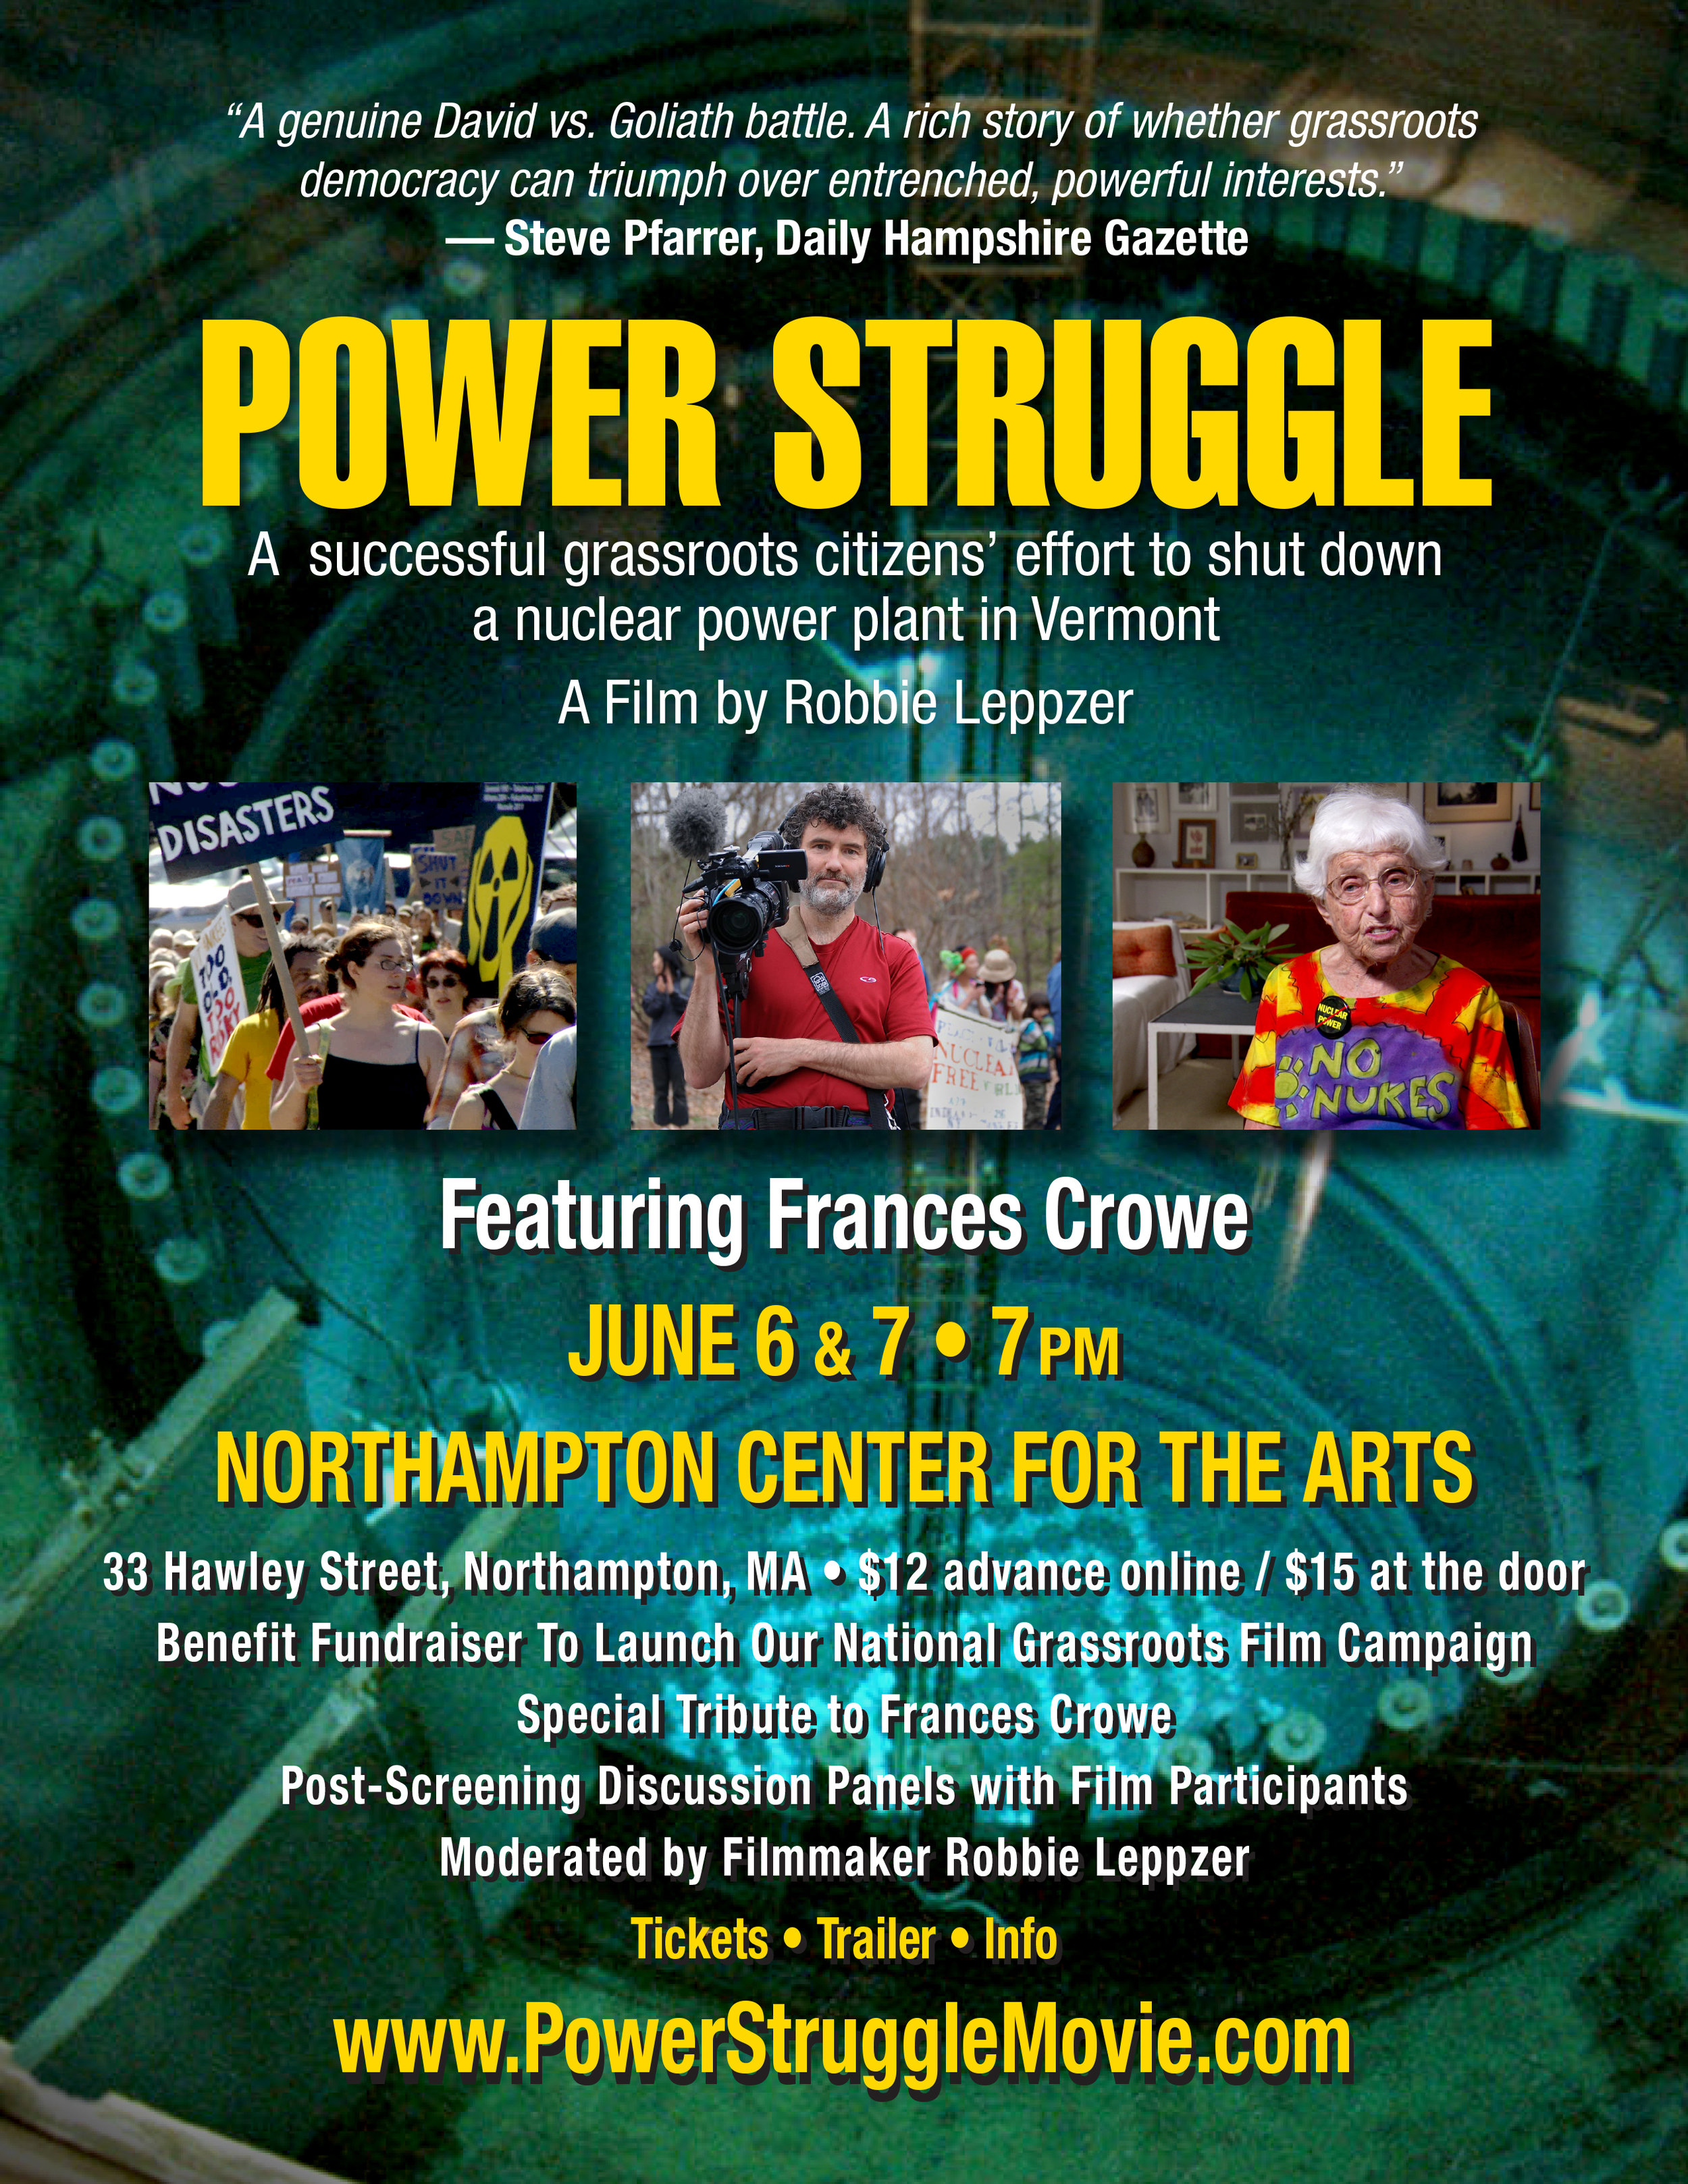 POWER-STRUGGLE-Noho-Screening-Flyer-1.1-5.16.19-full-size.jpg